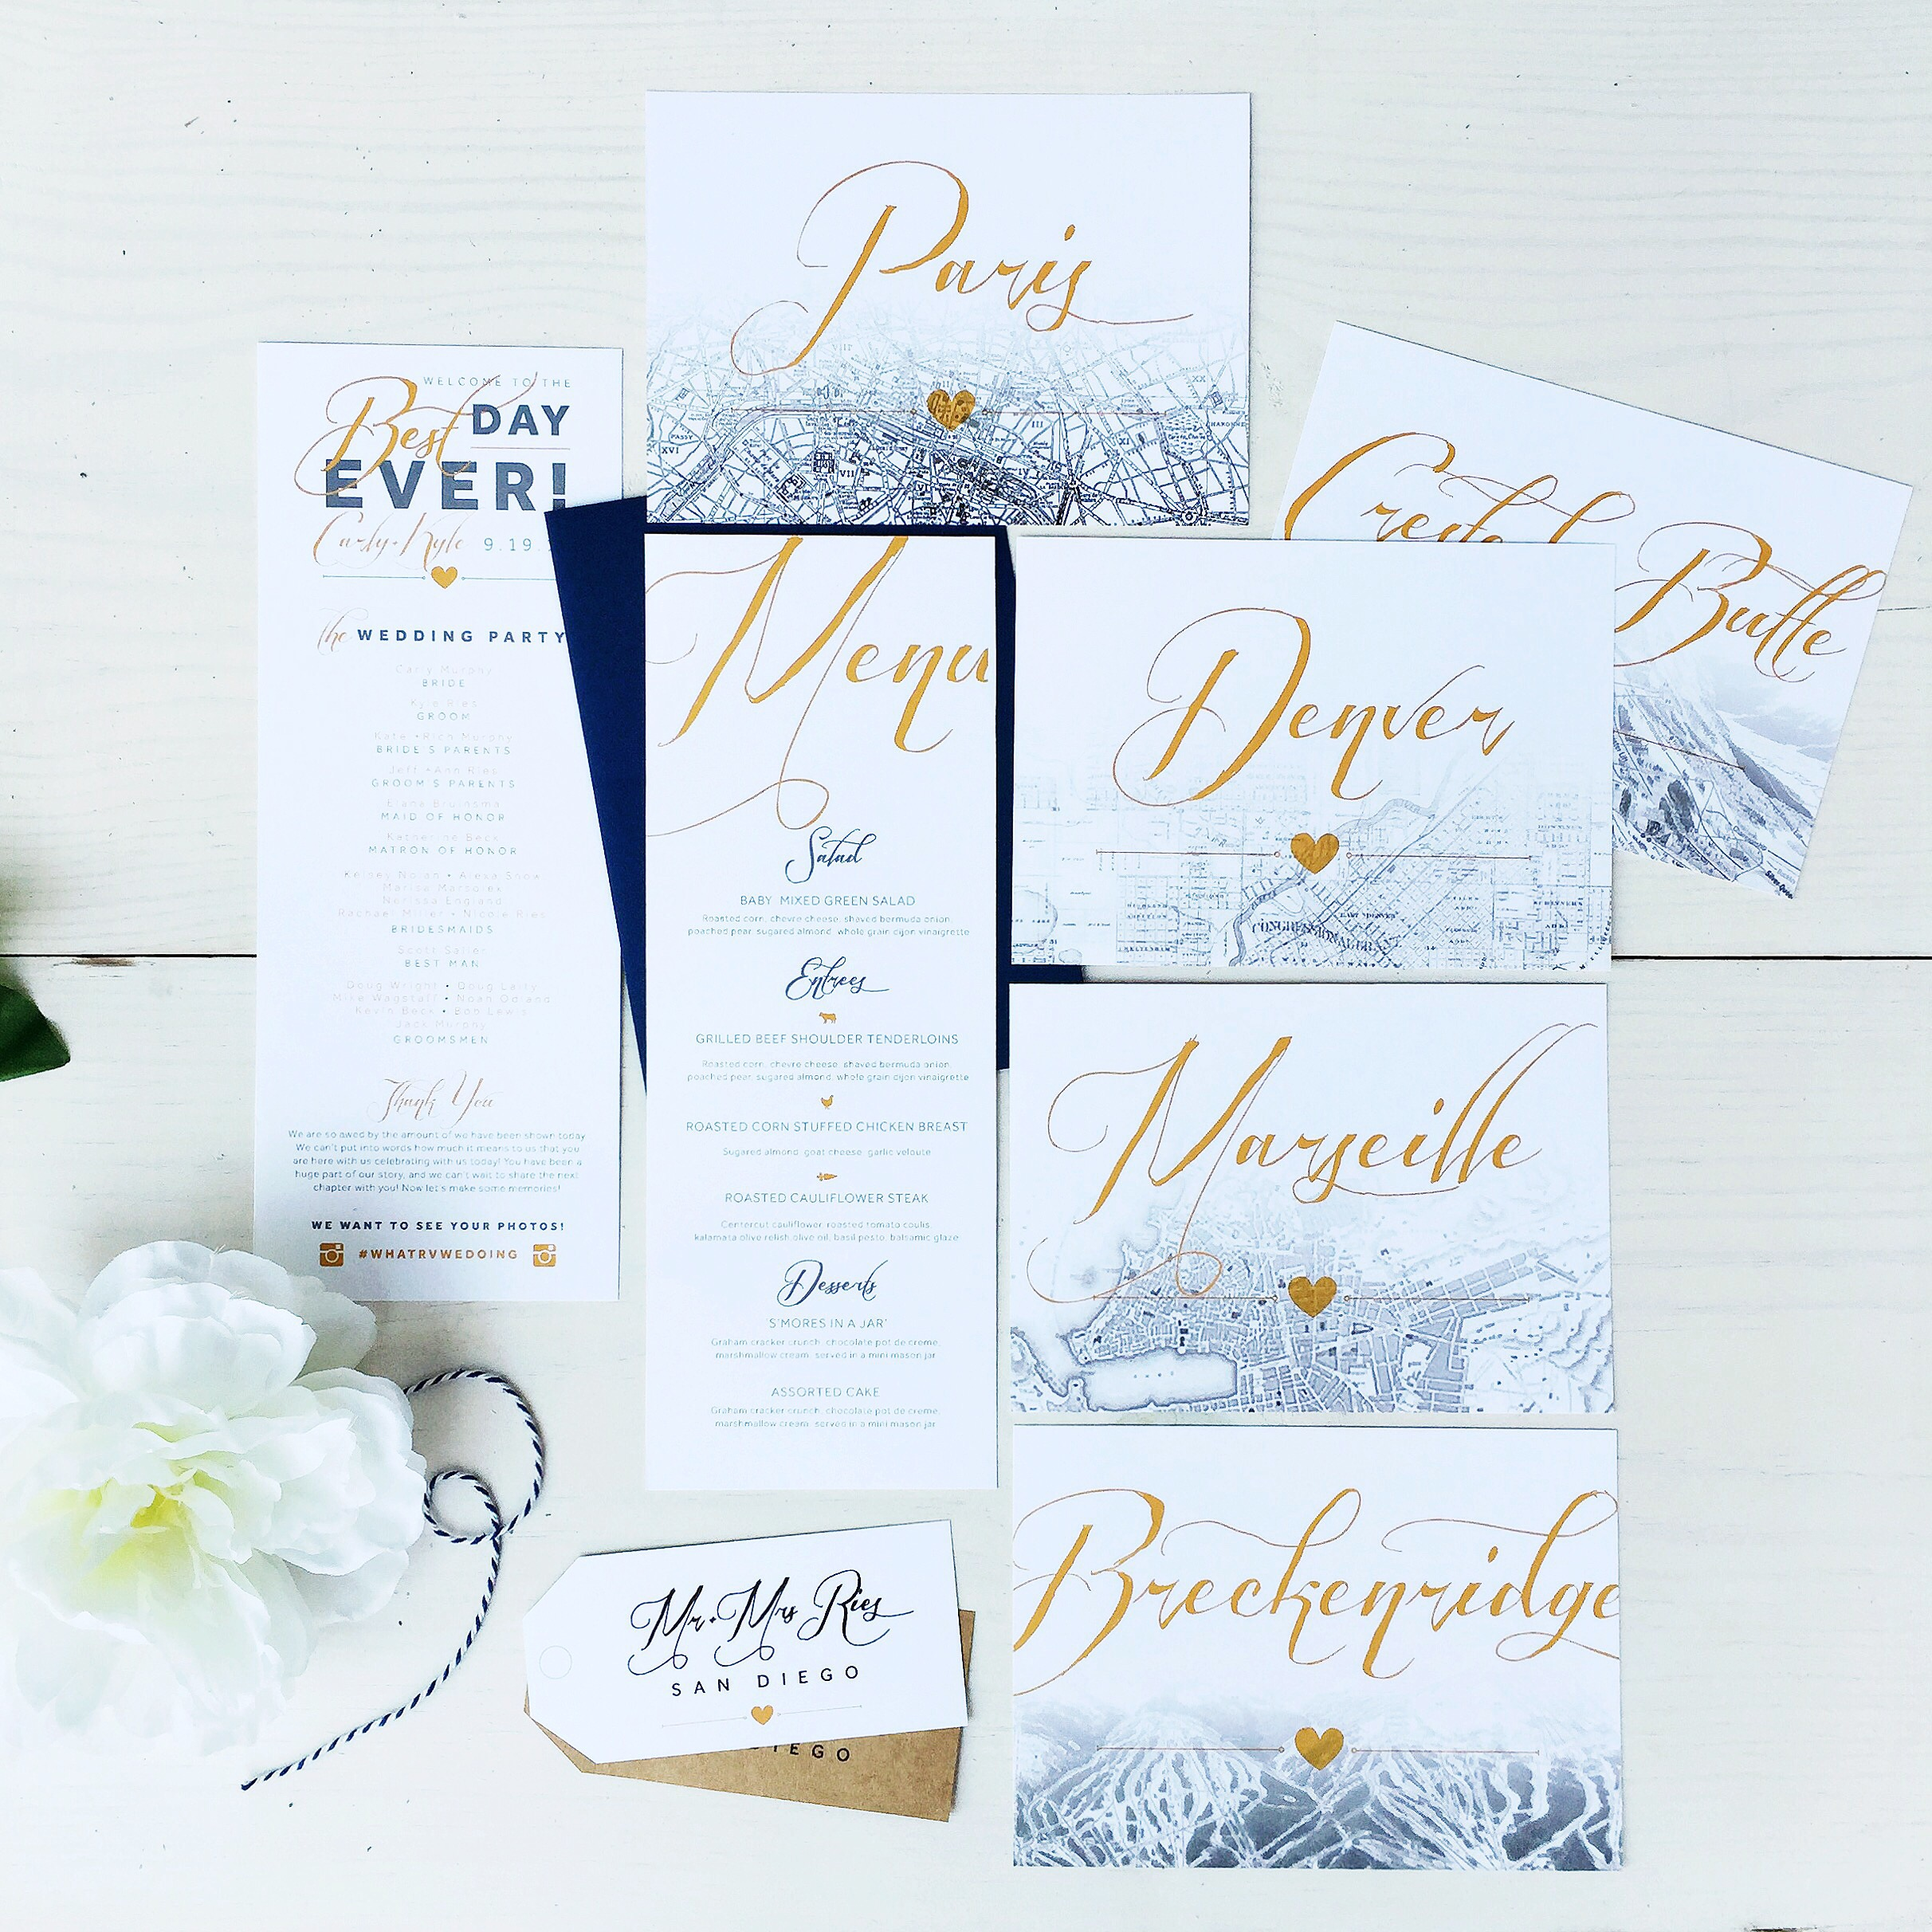 Travel themed custom wedding day details: Table numbers, reception menu, and ceremony program